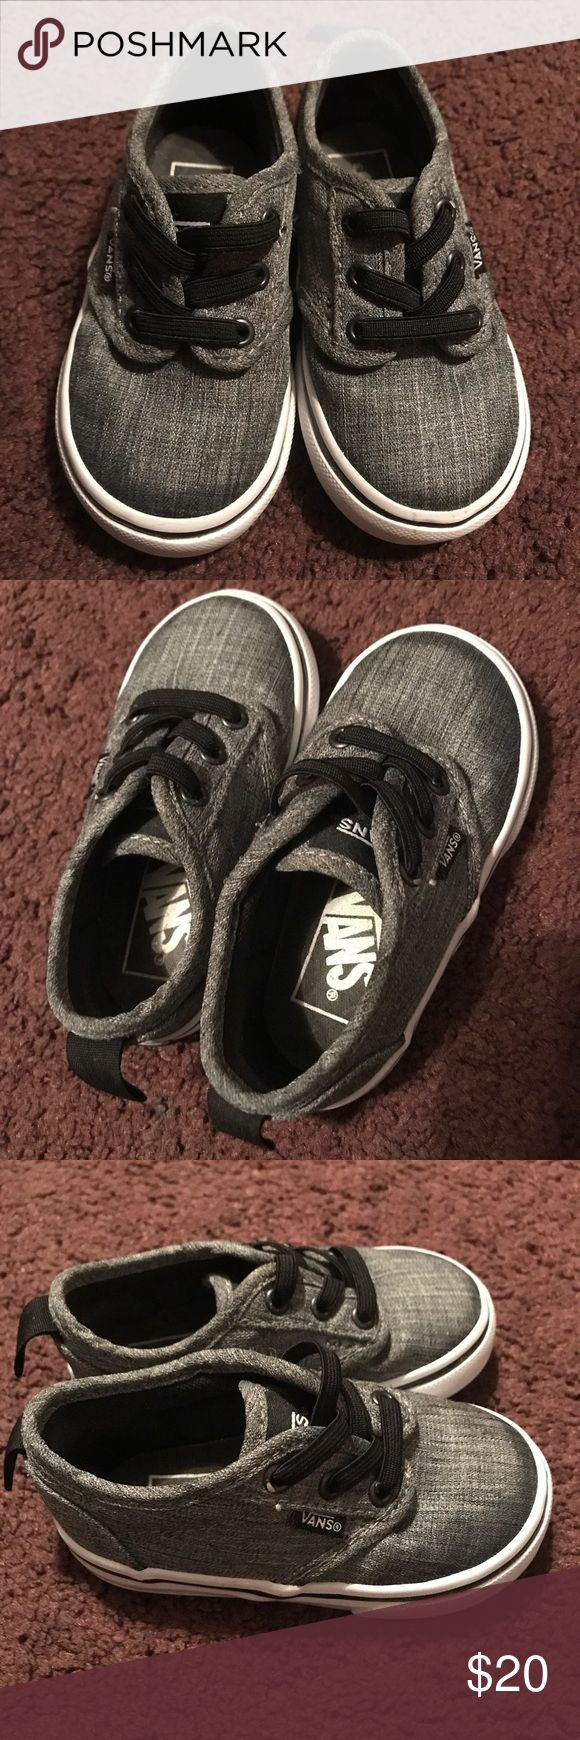 Toddler Vans for boys Excellent condition!!! No box Vans Shoes Sneakers